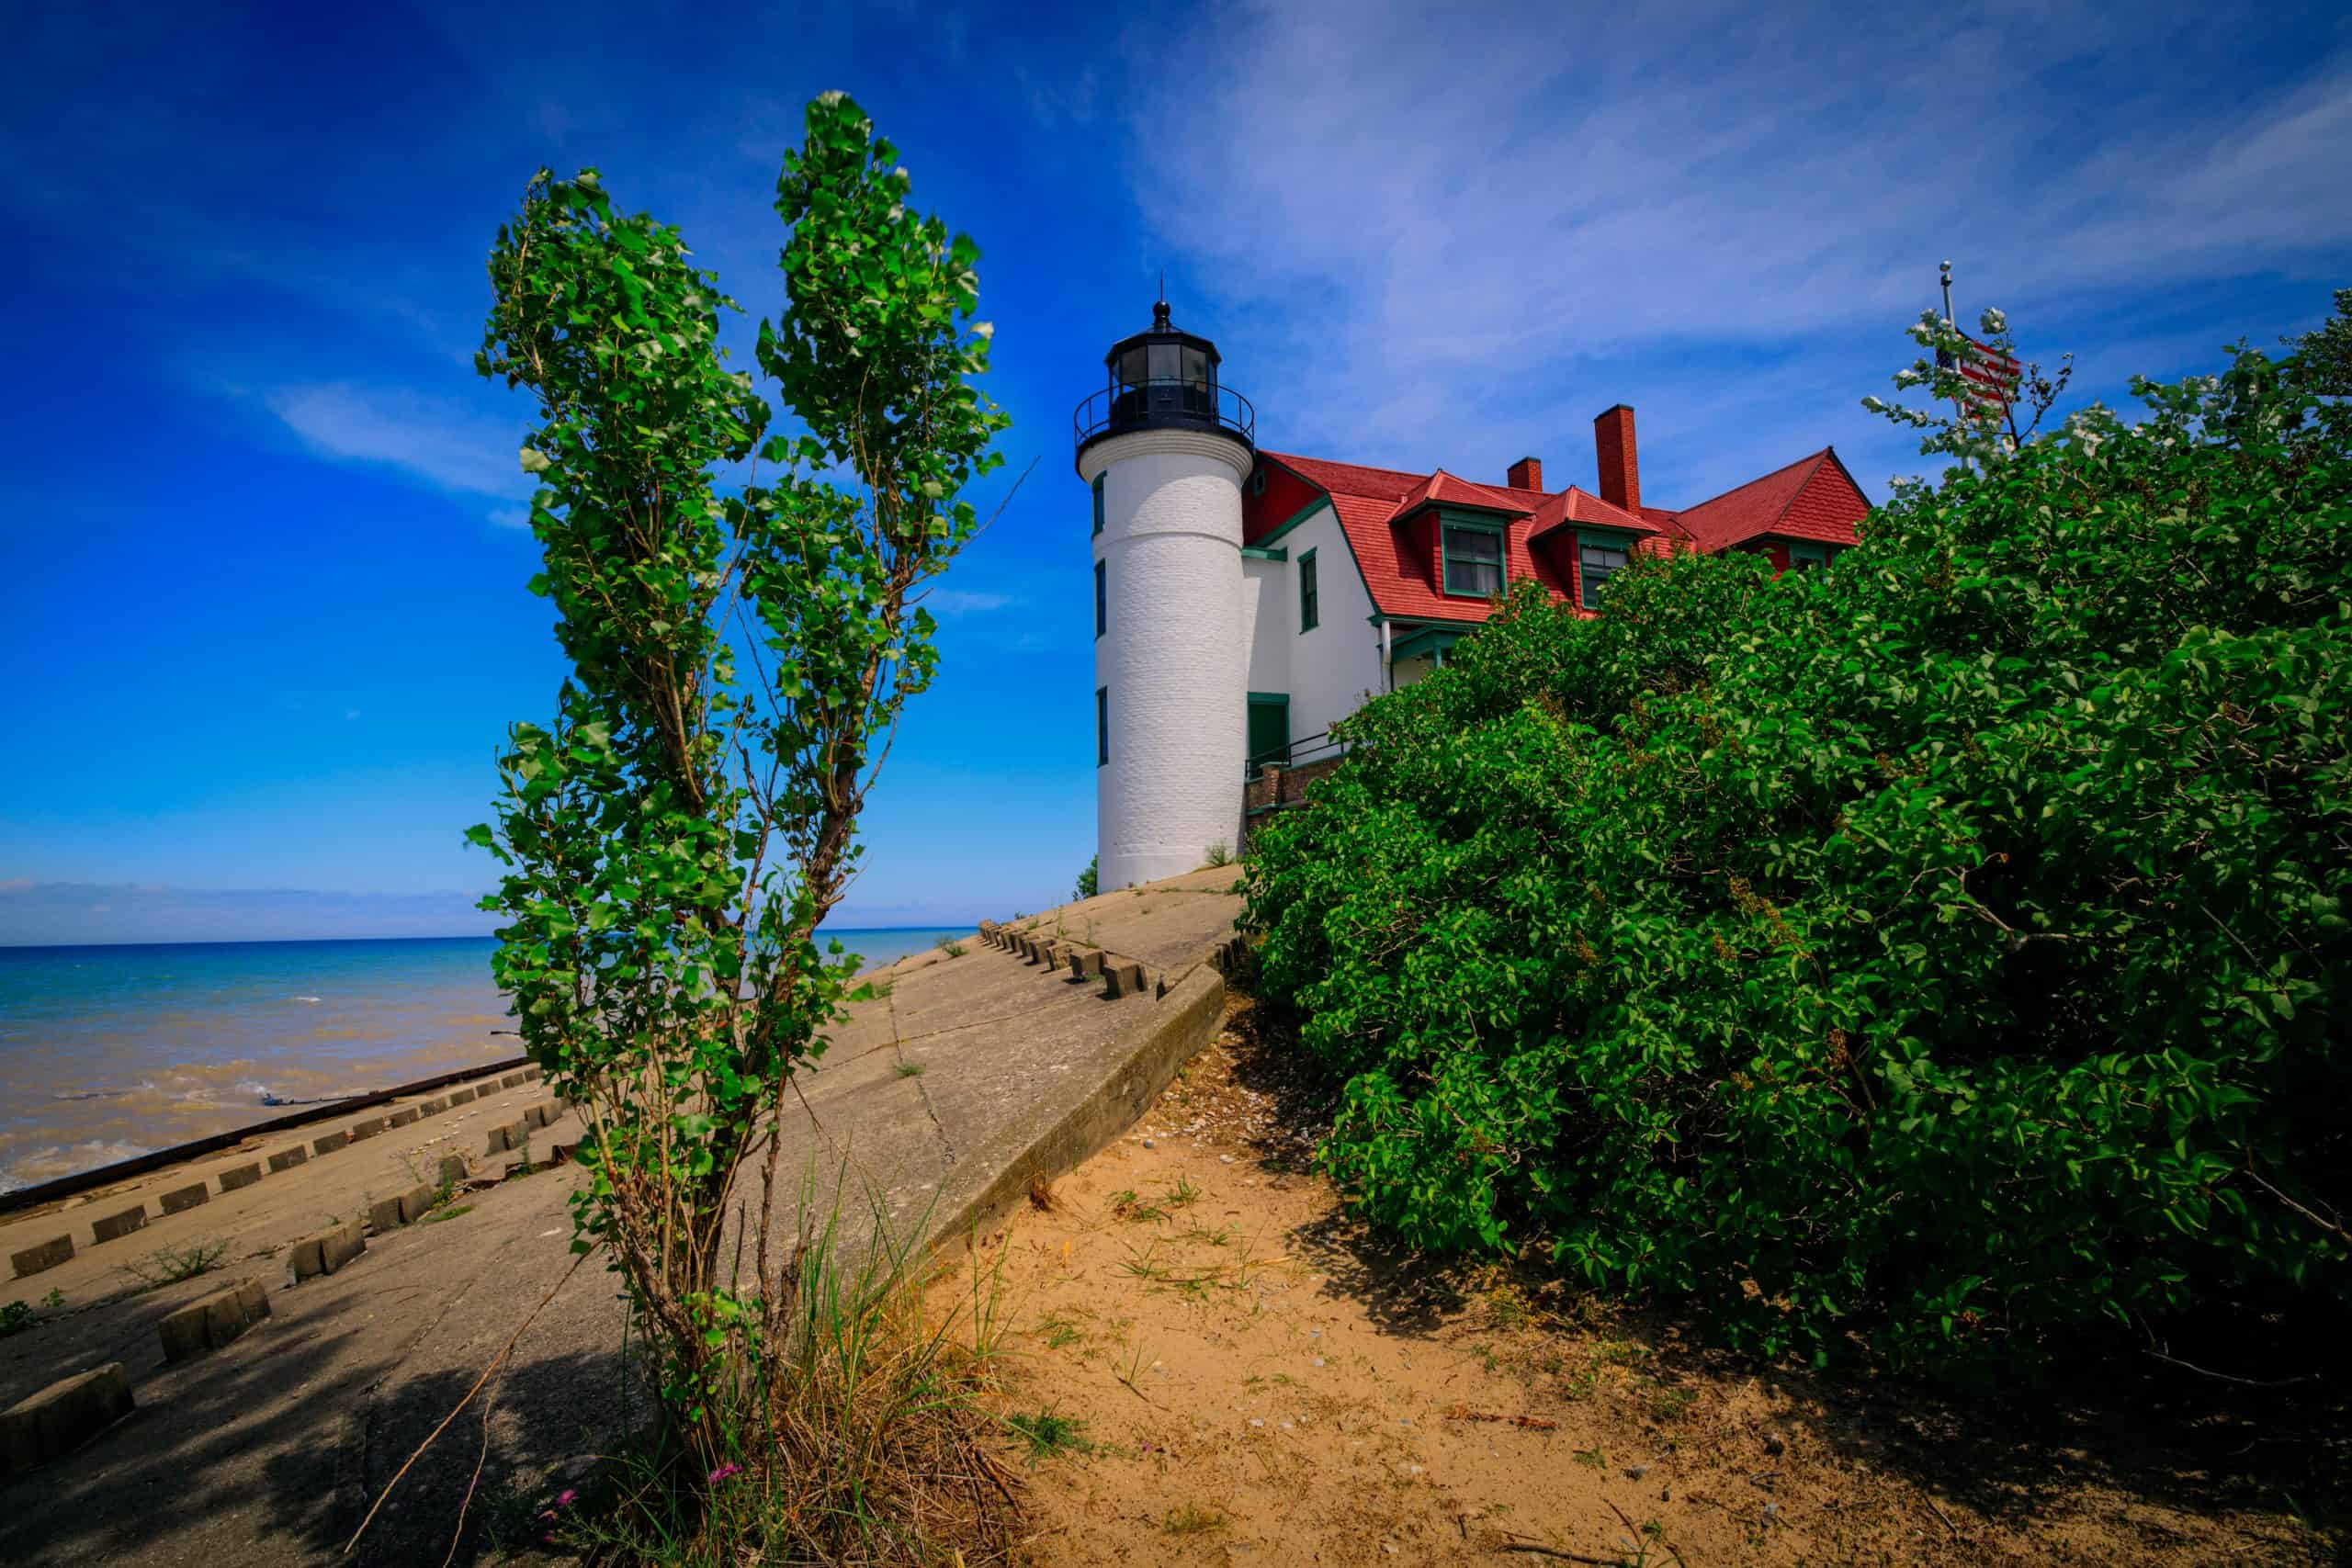 lighthouse michigan dennis buchner scaled Only A True Michigander Will Know These 16 Landmarks #Challenging